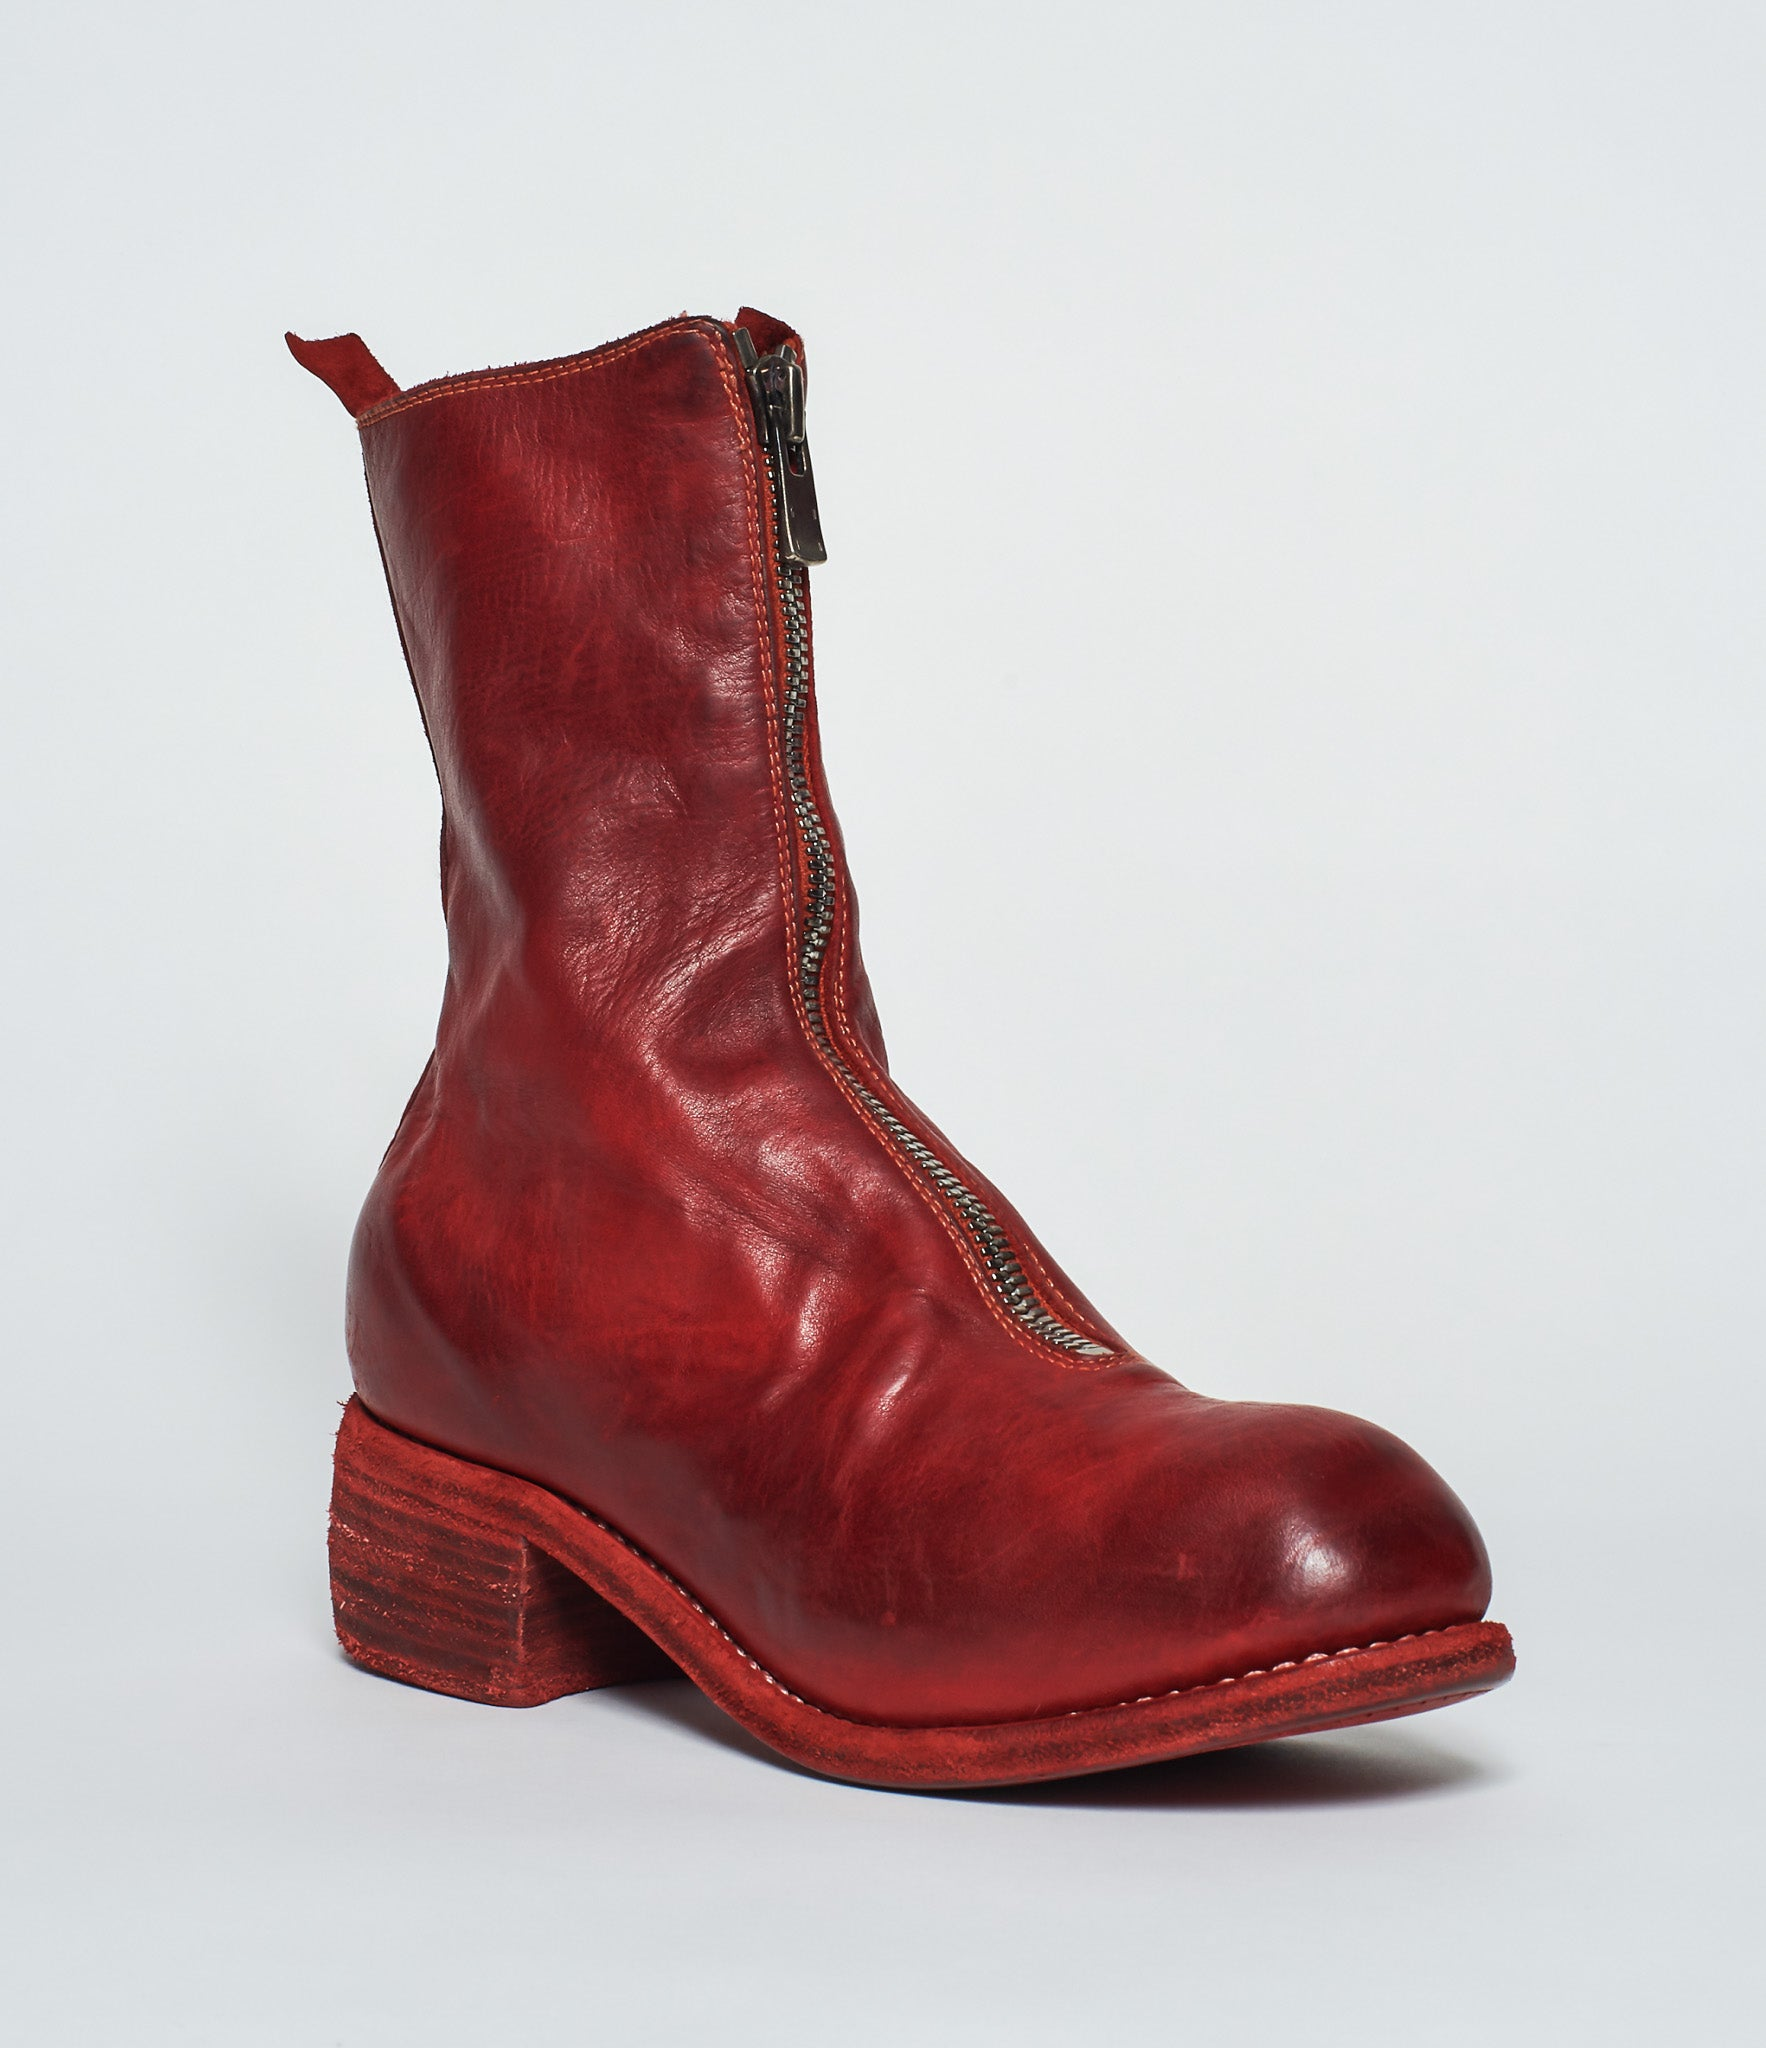 a3426fcc1 Guidi PL2 Red Soft Horse Full Grain Front Zip Calf-Length Boots ...